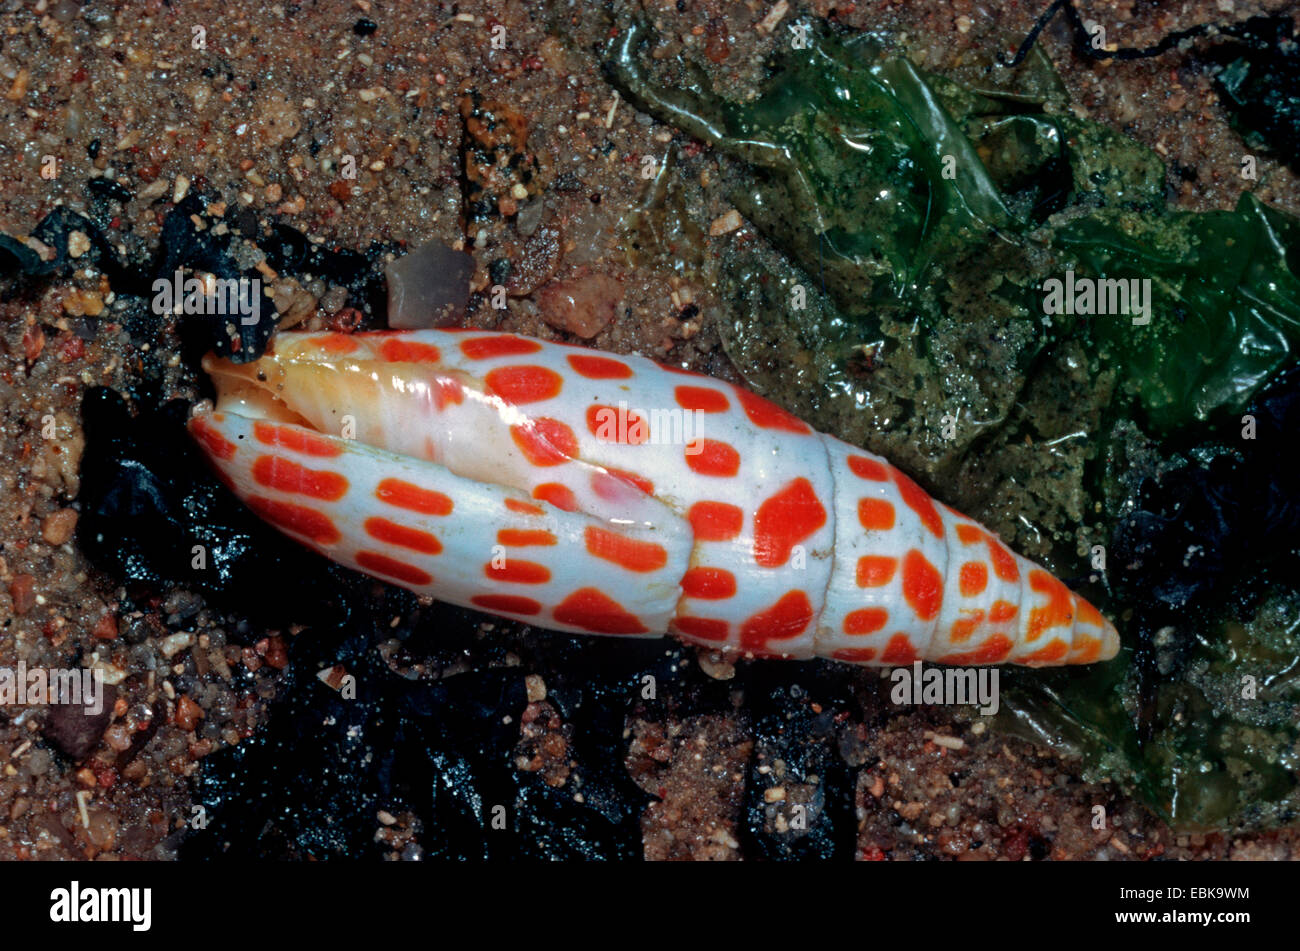 episcopal mitre, Episcopal miter (Mitra mitra, Mitra episcopalis), lying in the sand among algae - Stock Image